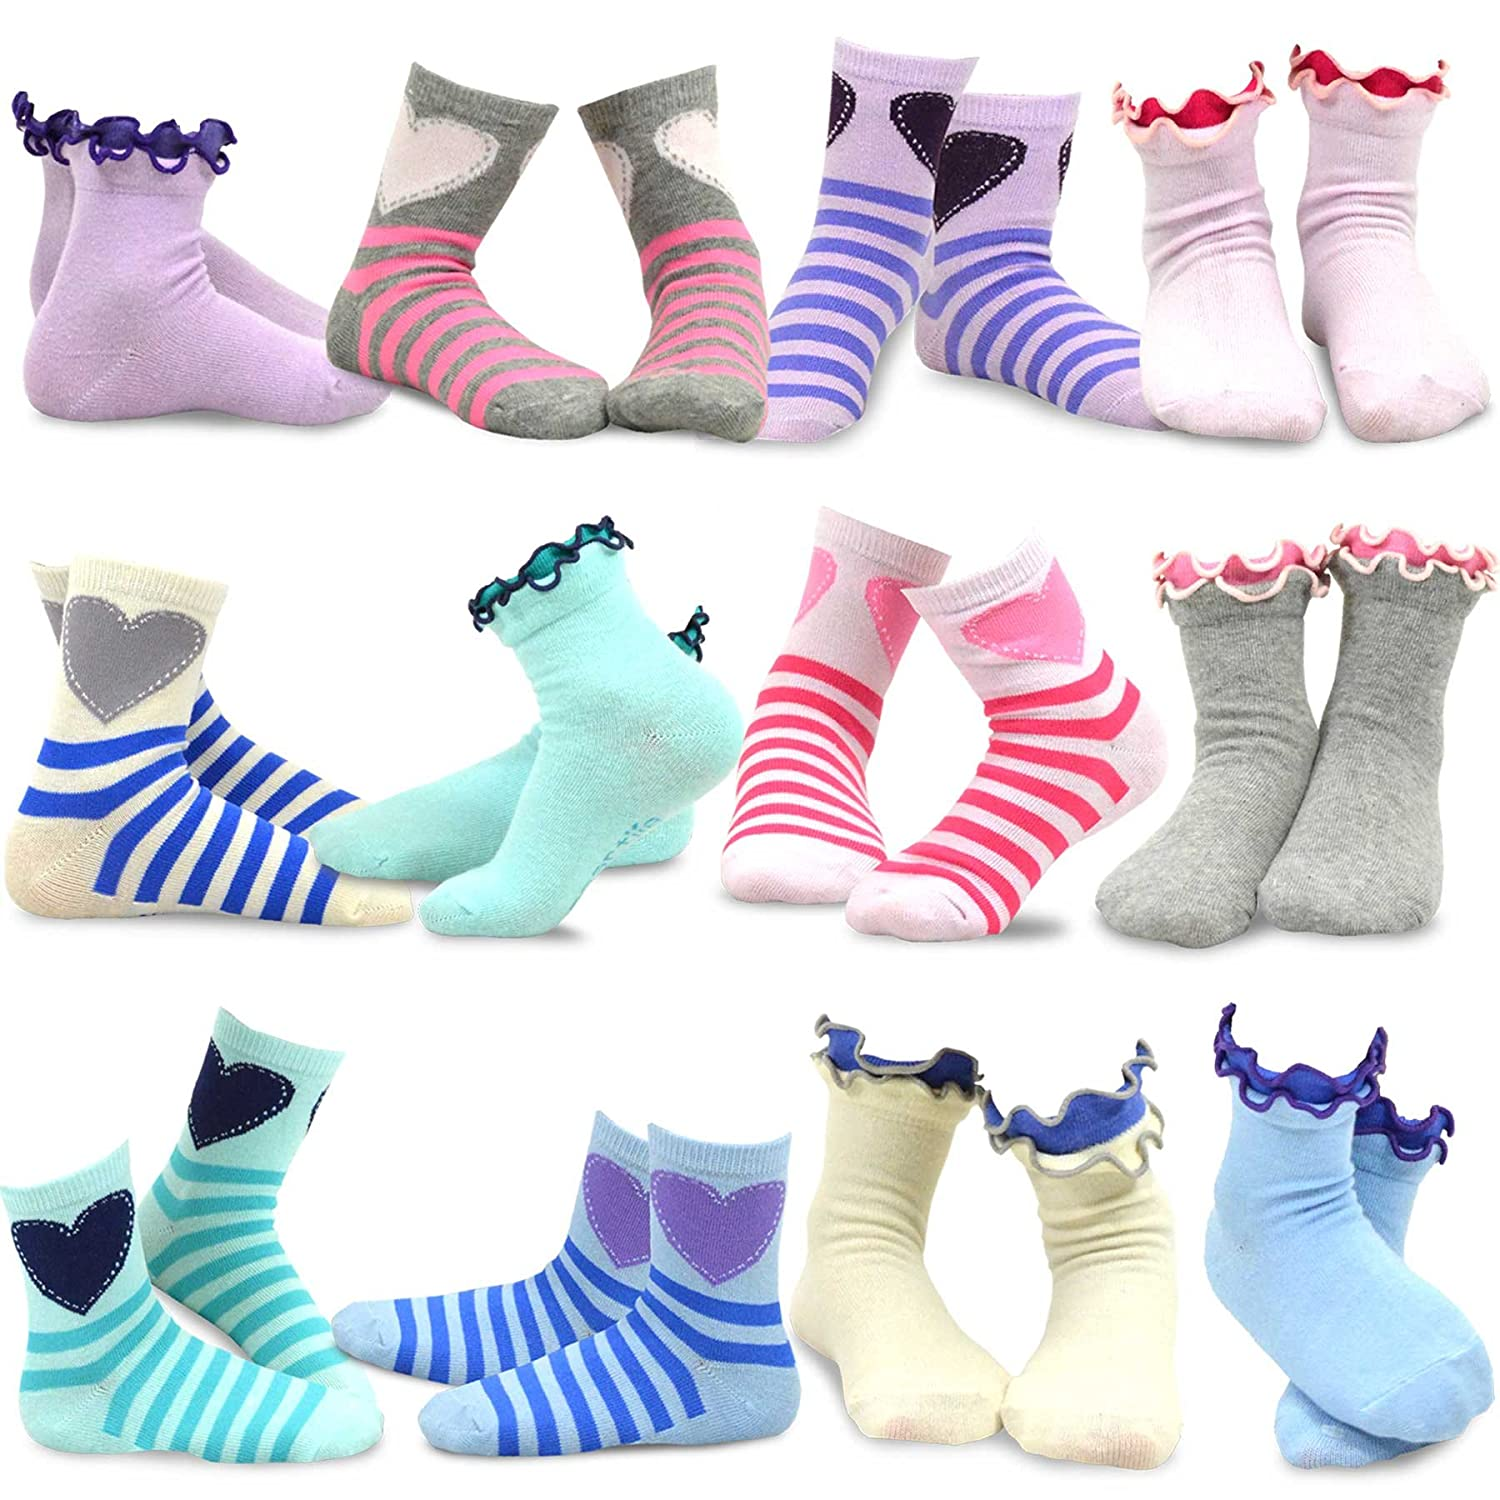 TeeHee Kids Girls Cotton Basic Crew Socks 12 Pair Pack Naartjie